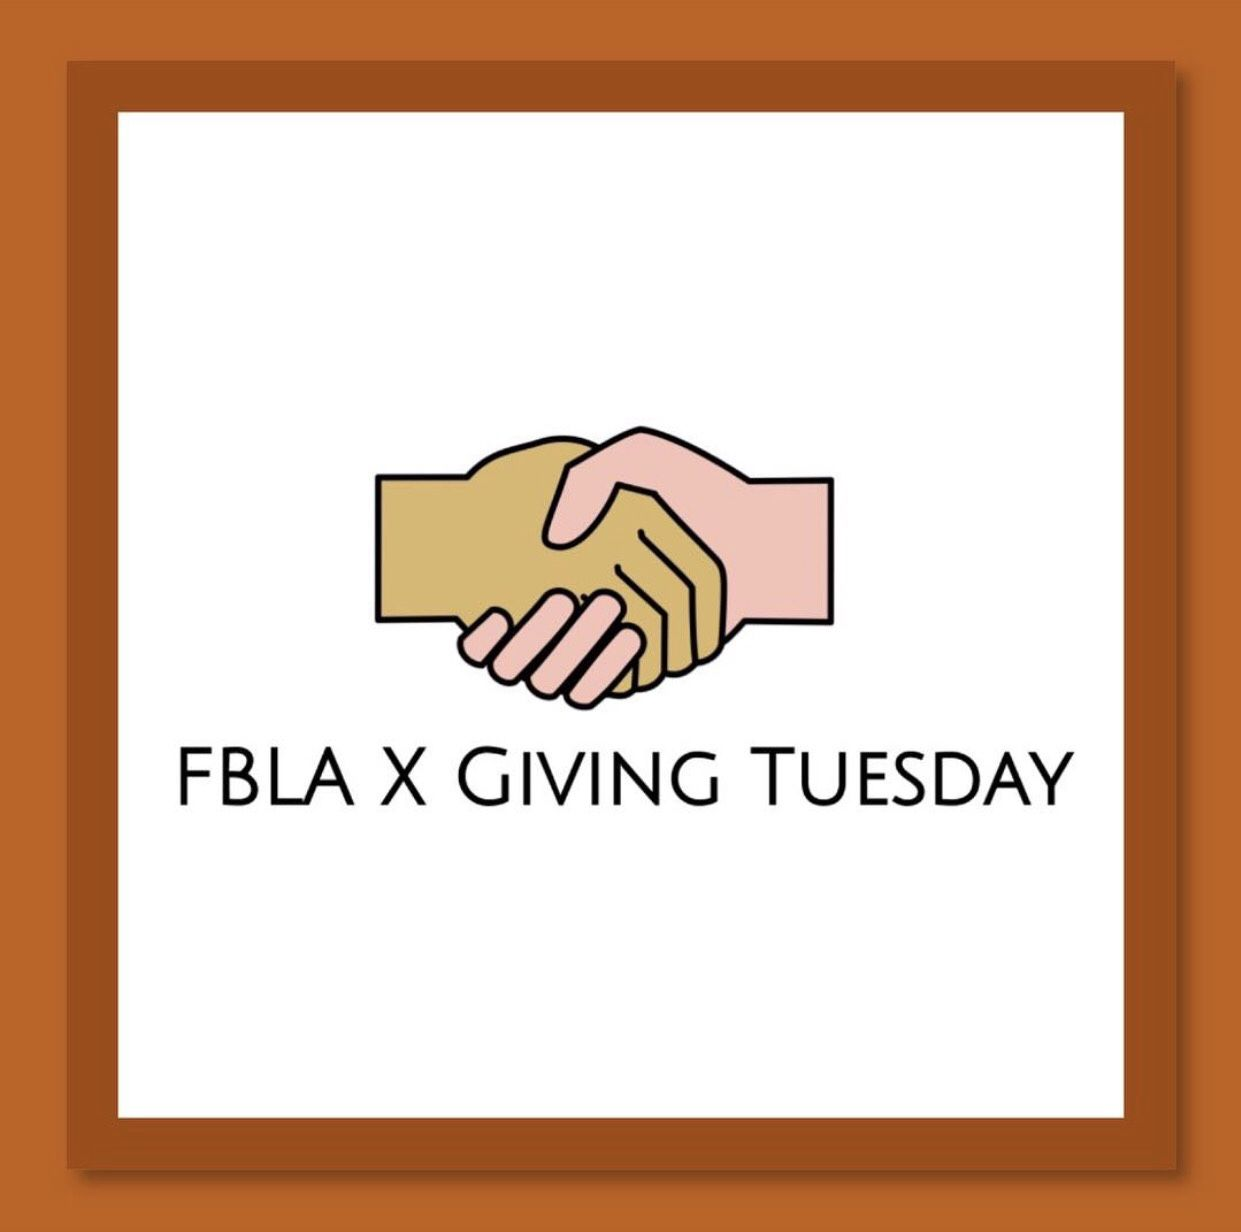 Pin By Pauseforacause On Fbla X Giving Tuesday In